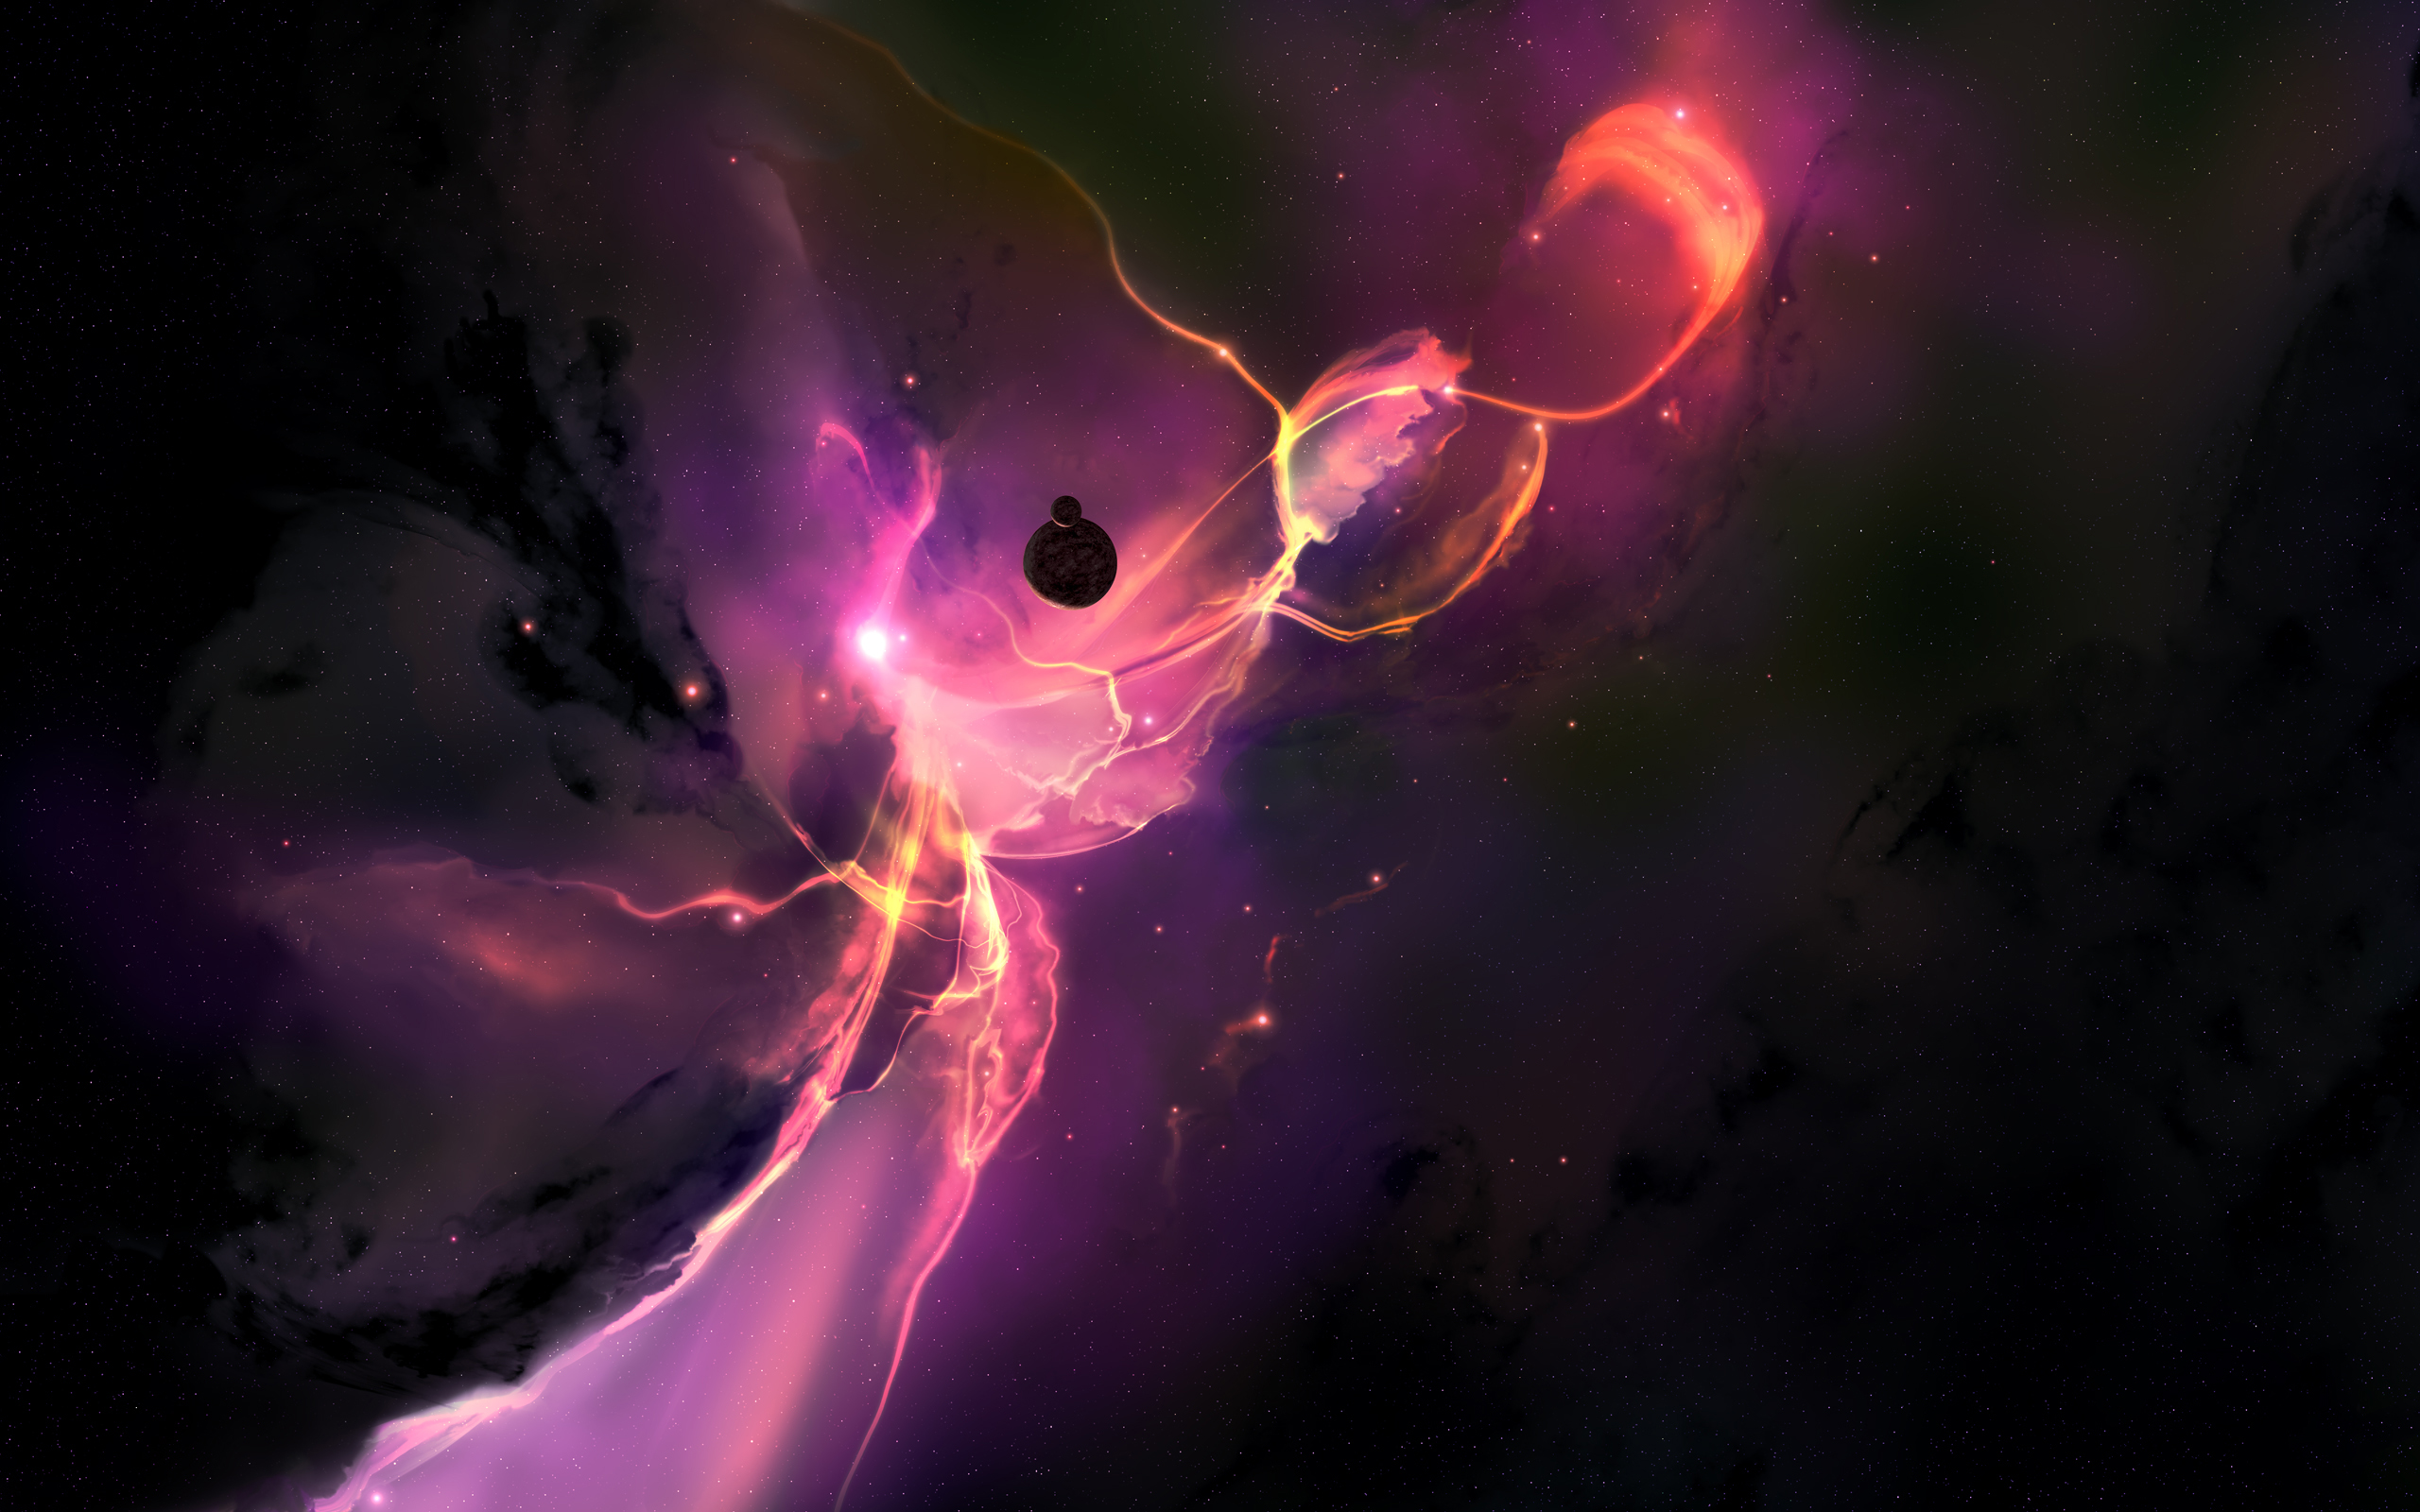 Purple space artwork